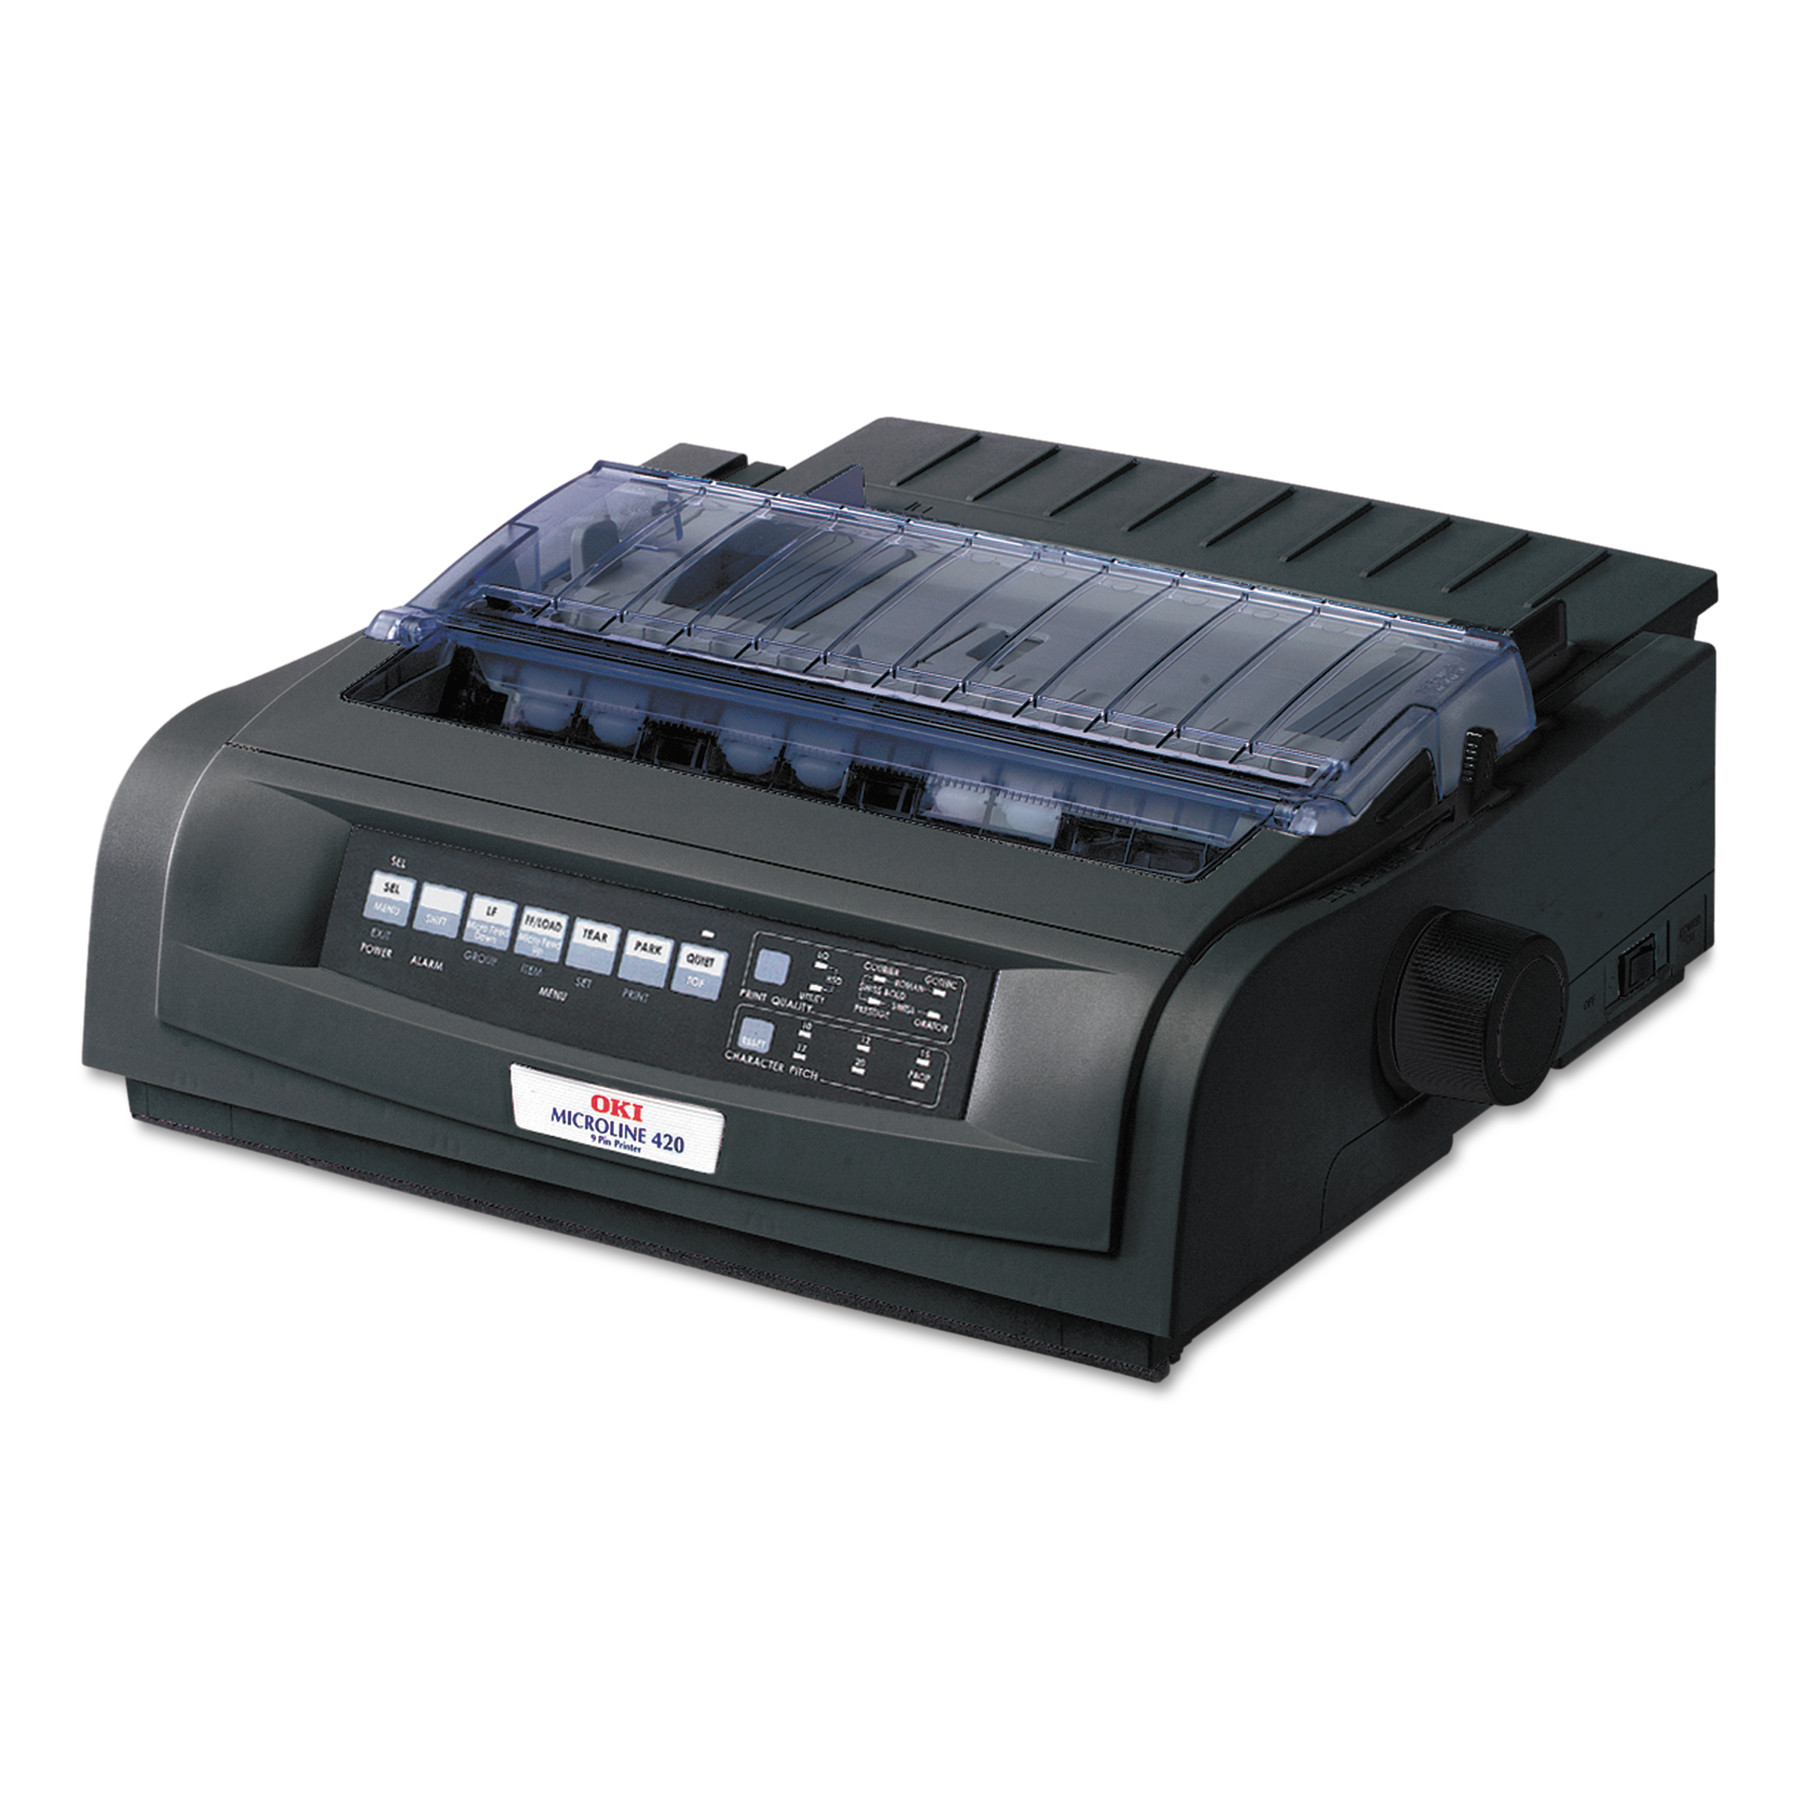 Oki Microline 420 Serial Narrow-Carriage 9-Pin Dot Matrix Printer